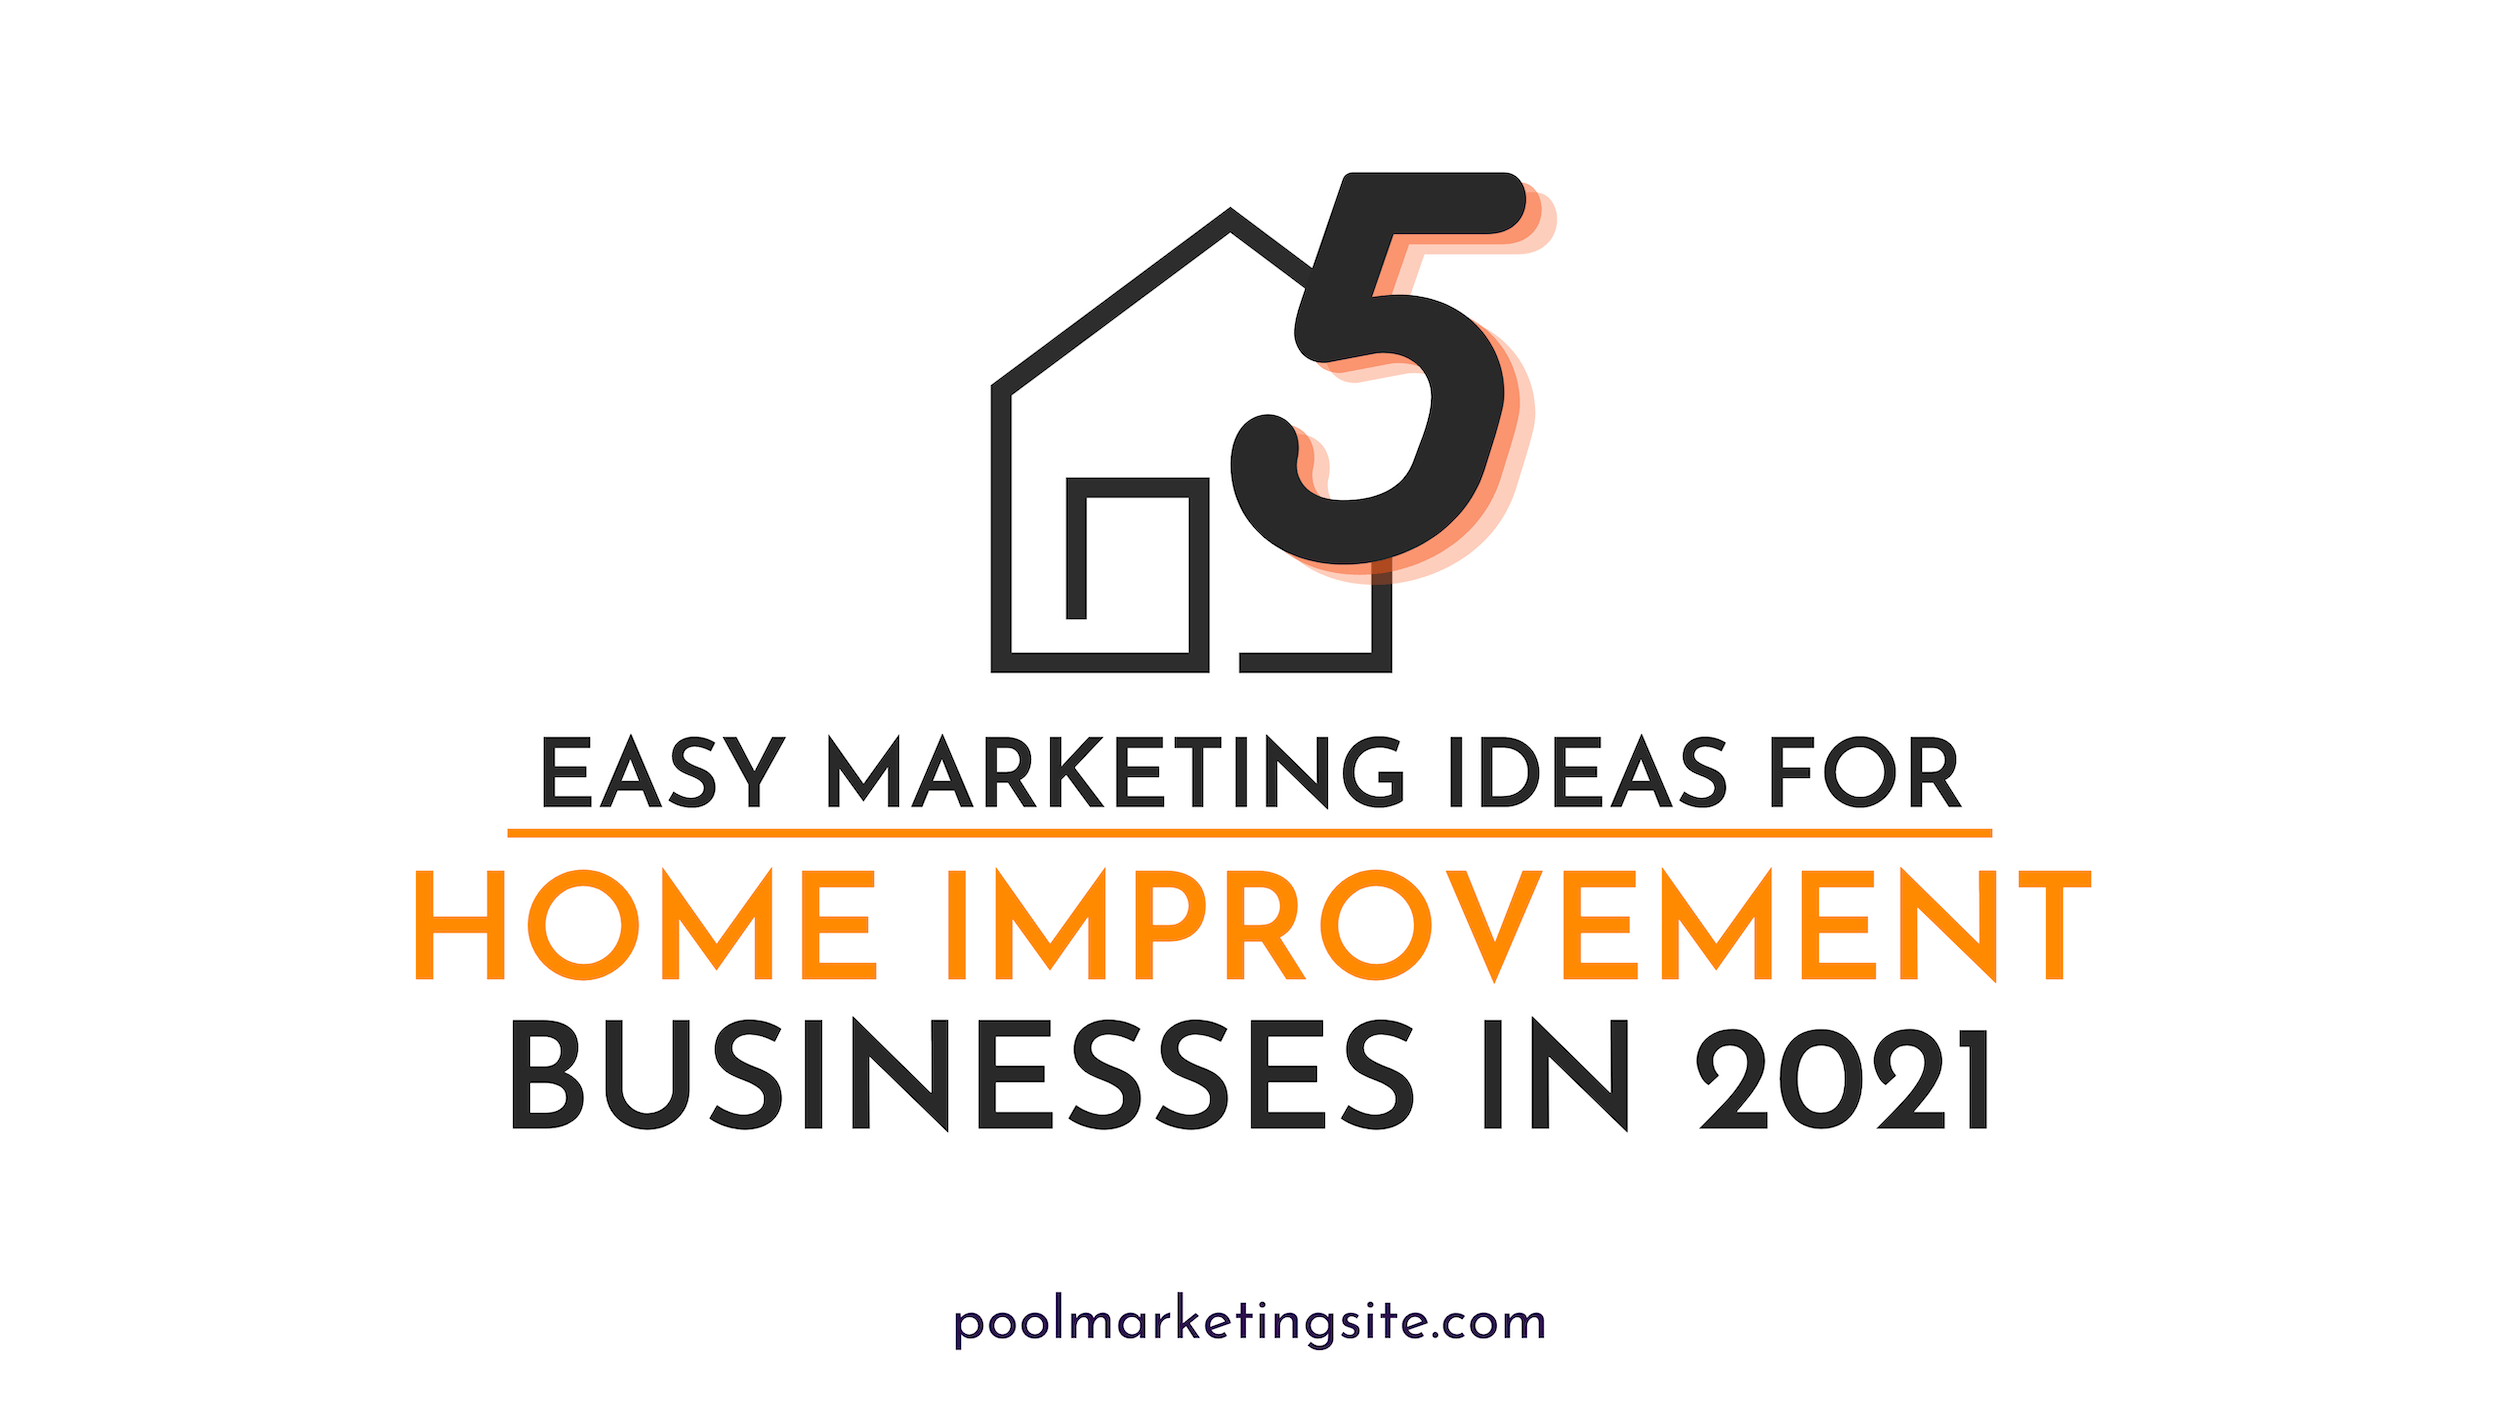 5 Easy Marketing Ideas for Home Improvement Businesses in 2021